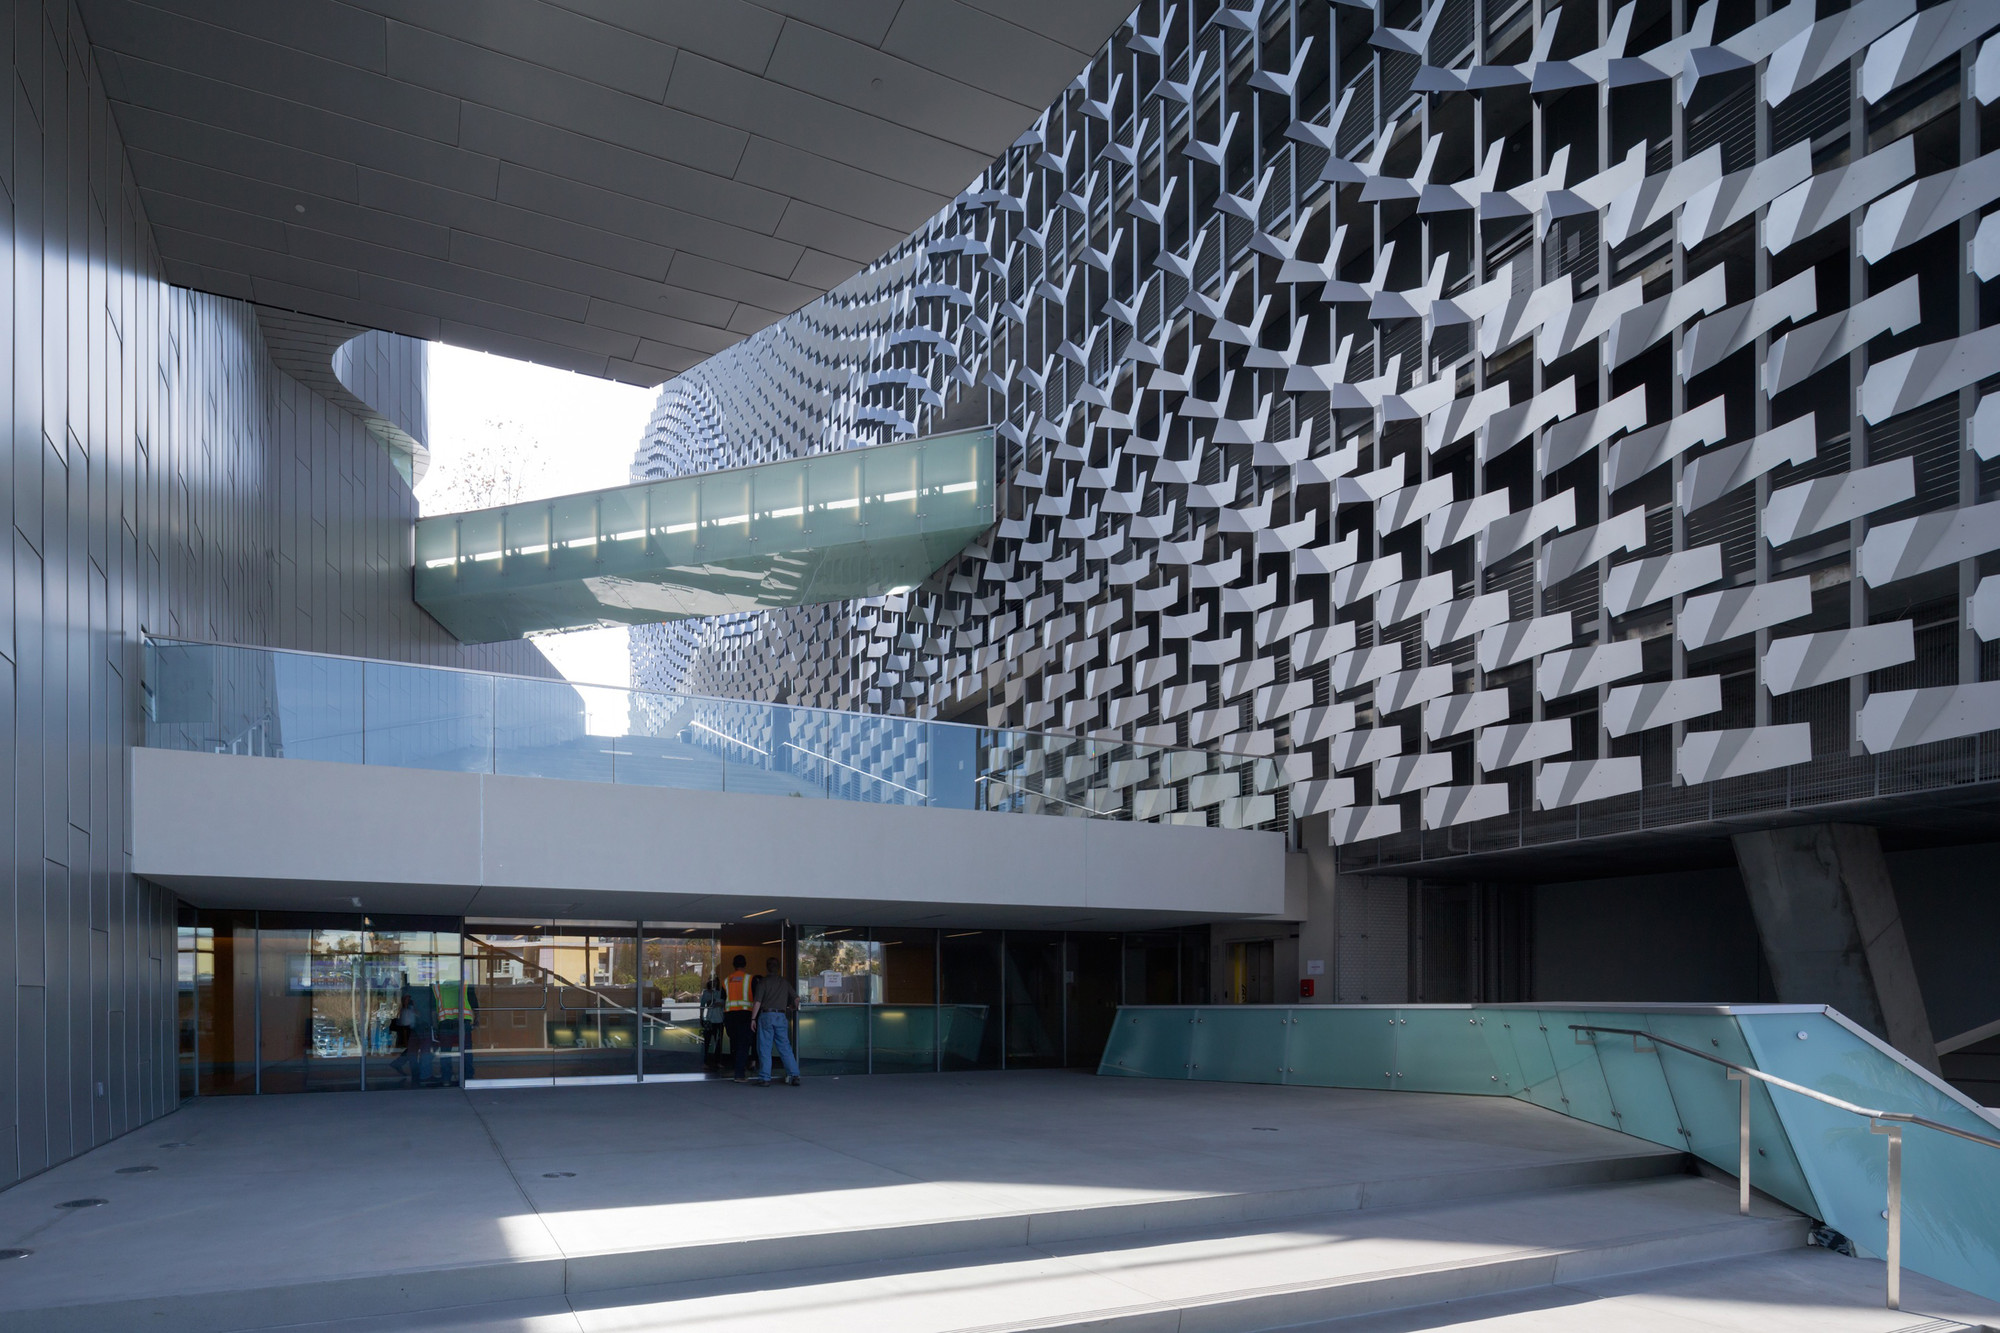 Emerson College Los Angeles >> Gallery Of Emerson College Los Angeles Morphosis Architects 2